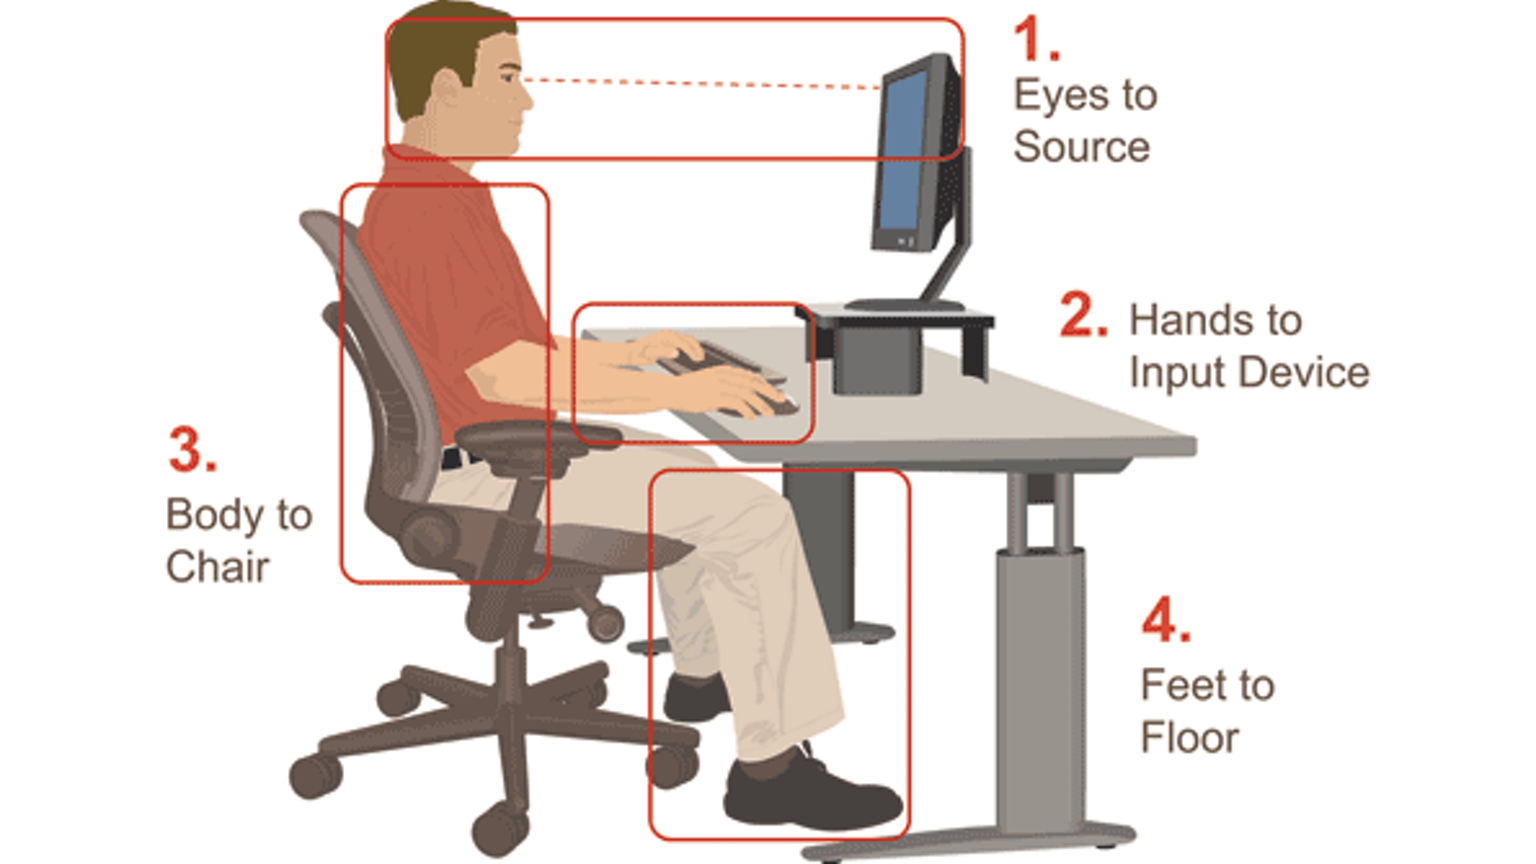 Proper ergonomics of an office